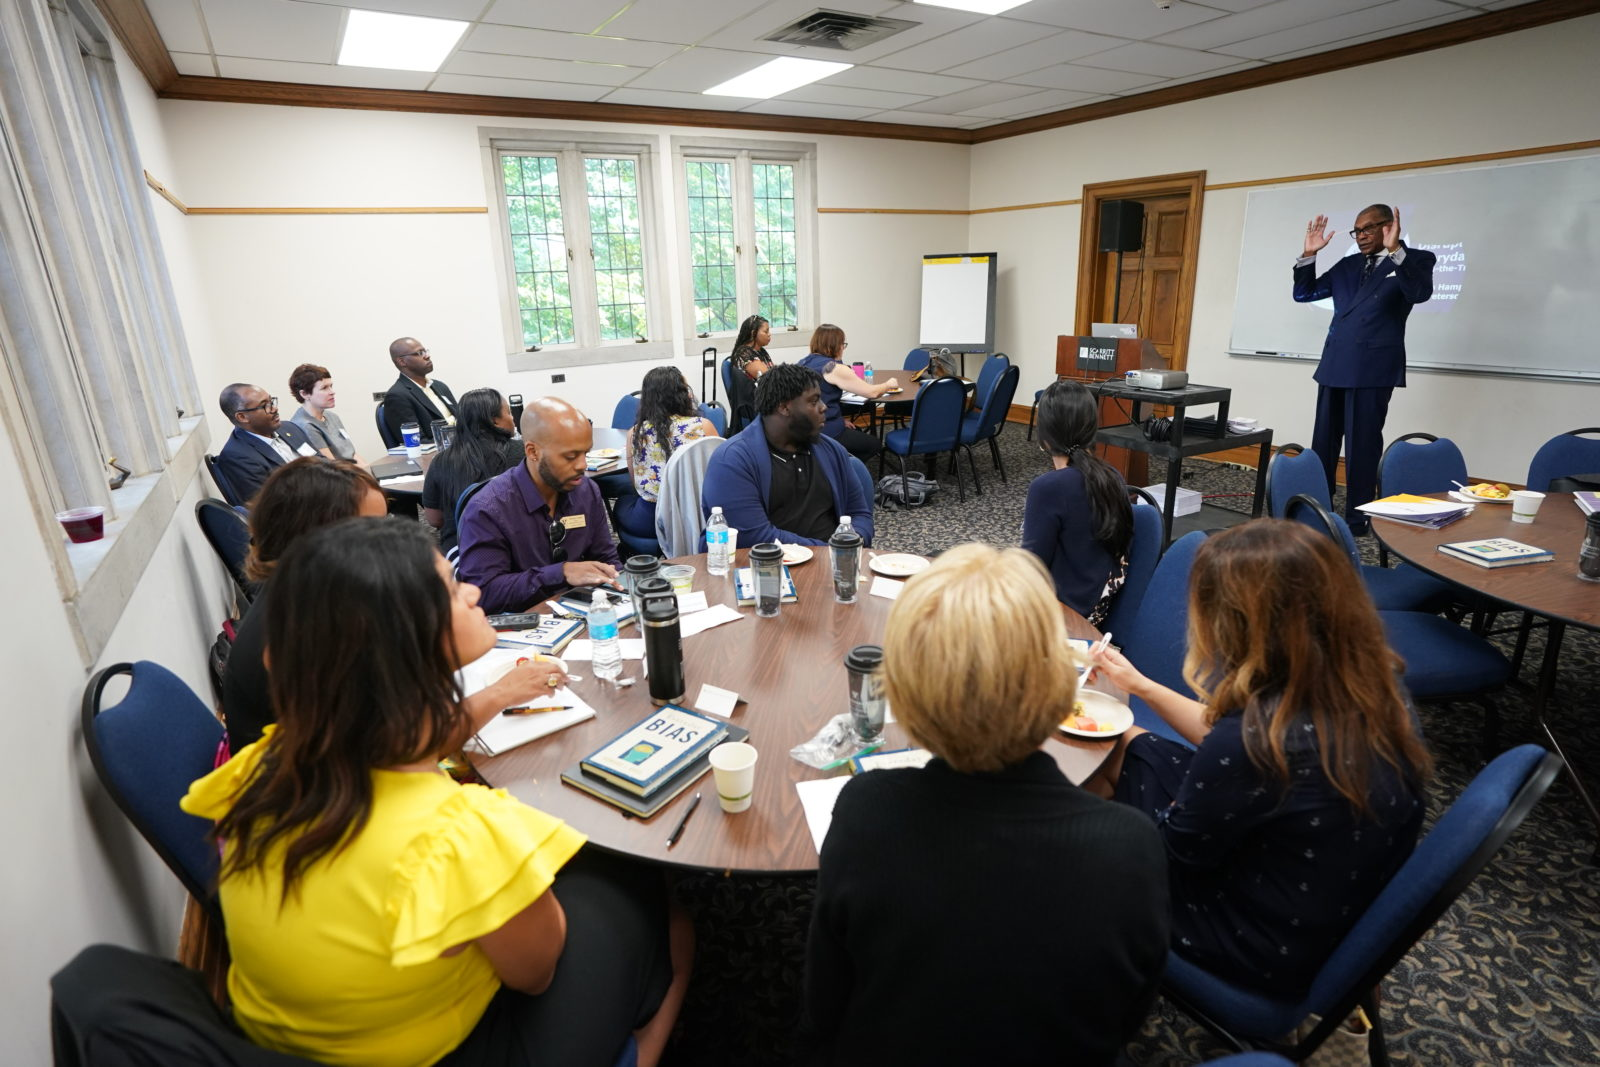 Participants at the unconscious bias train-the-trainer workshop (John Russell/Vanderbilt University)